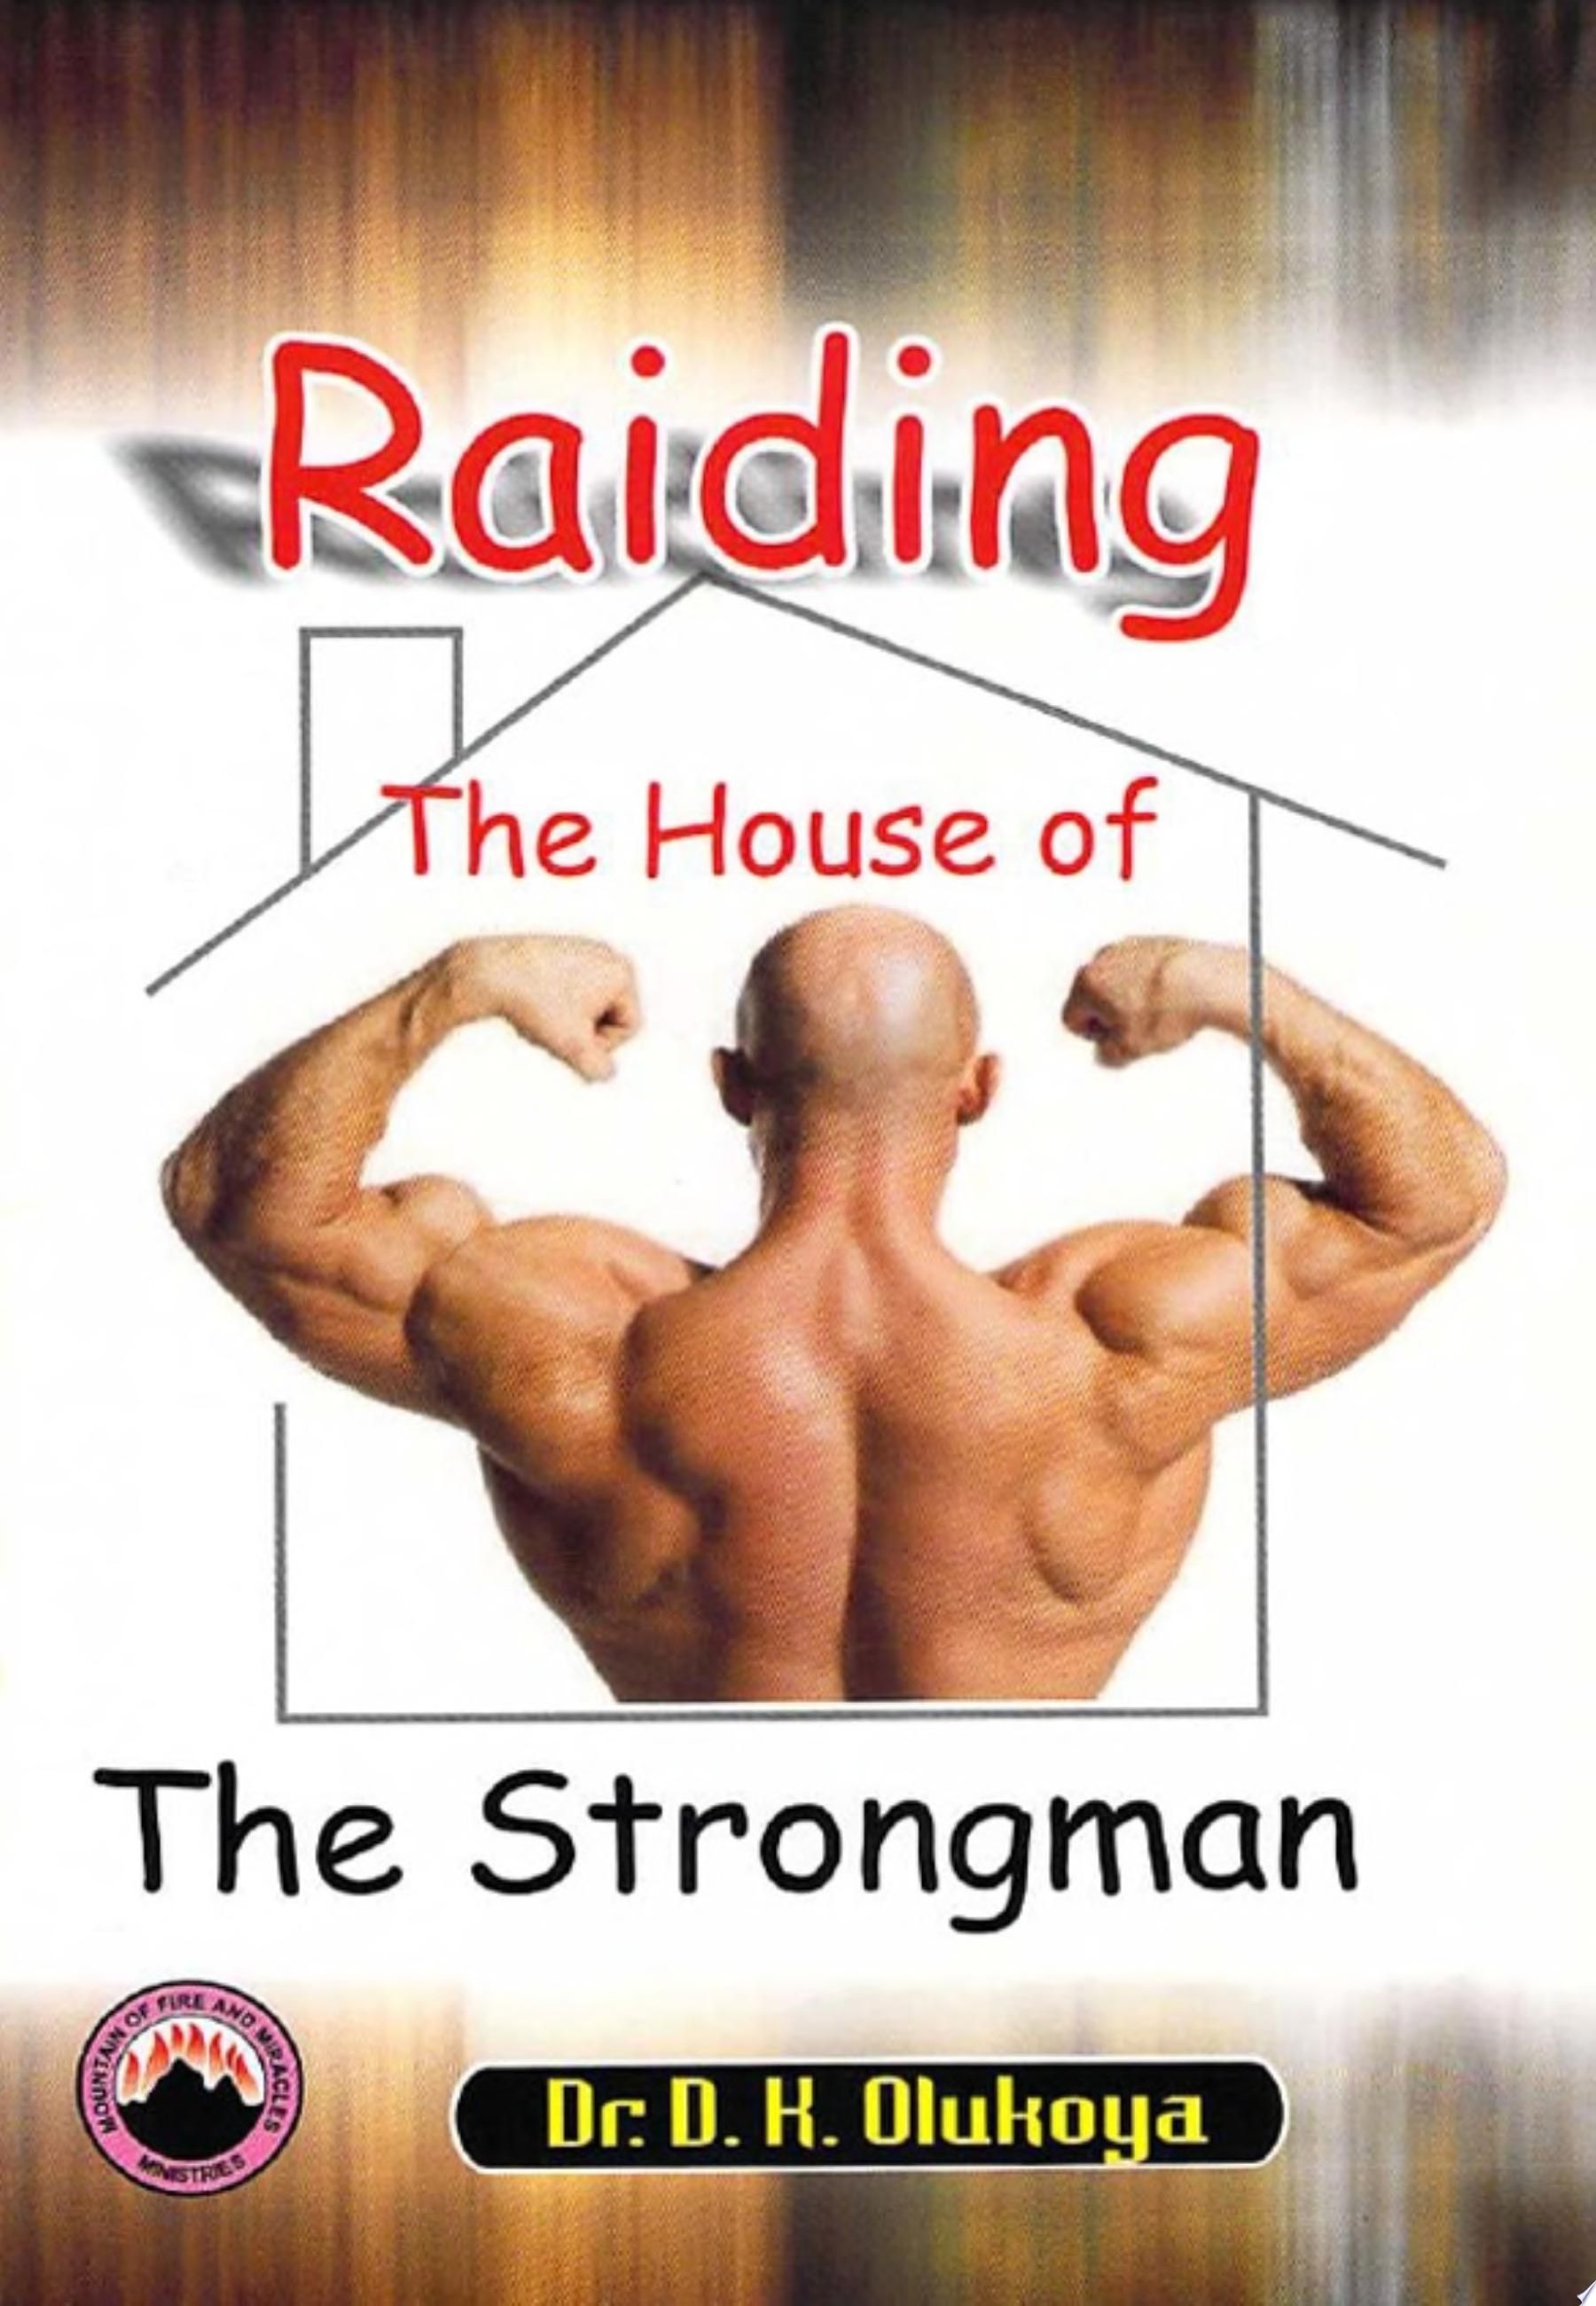 Raiding the House of the Strongman